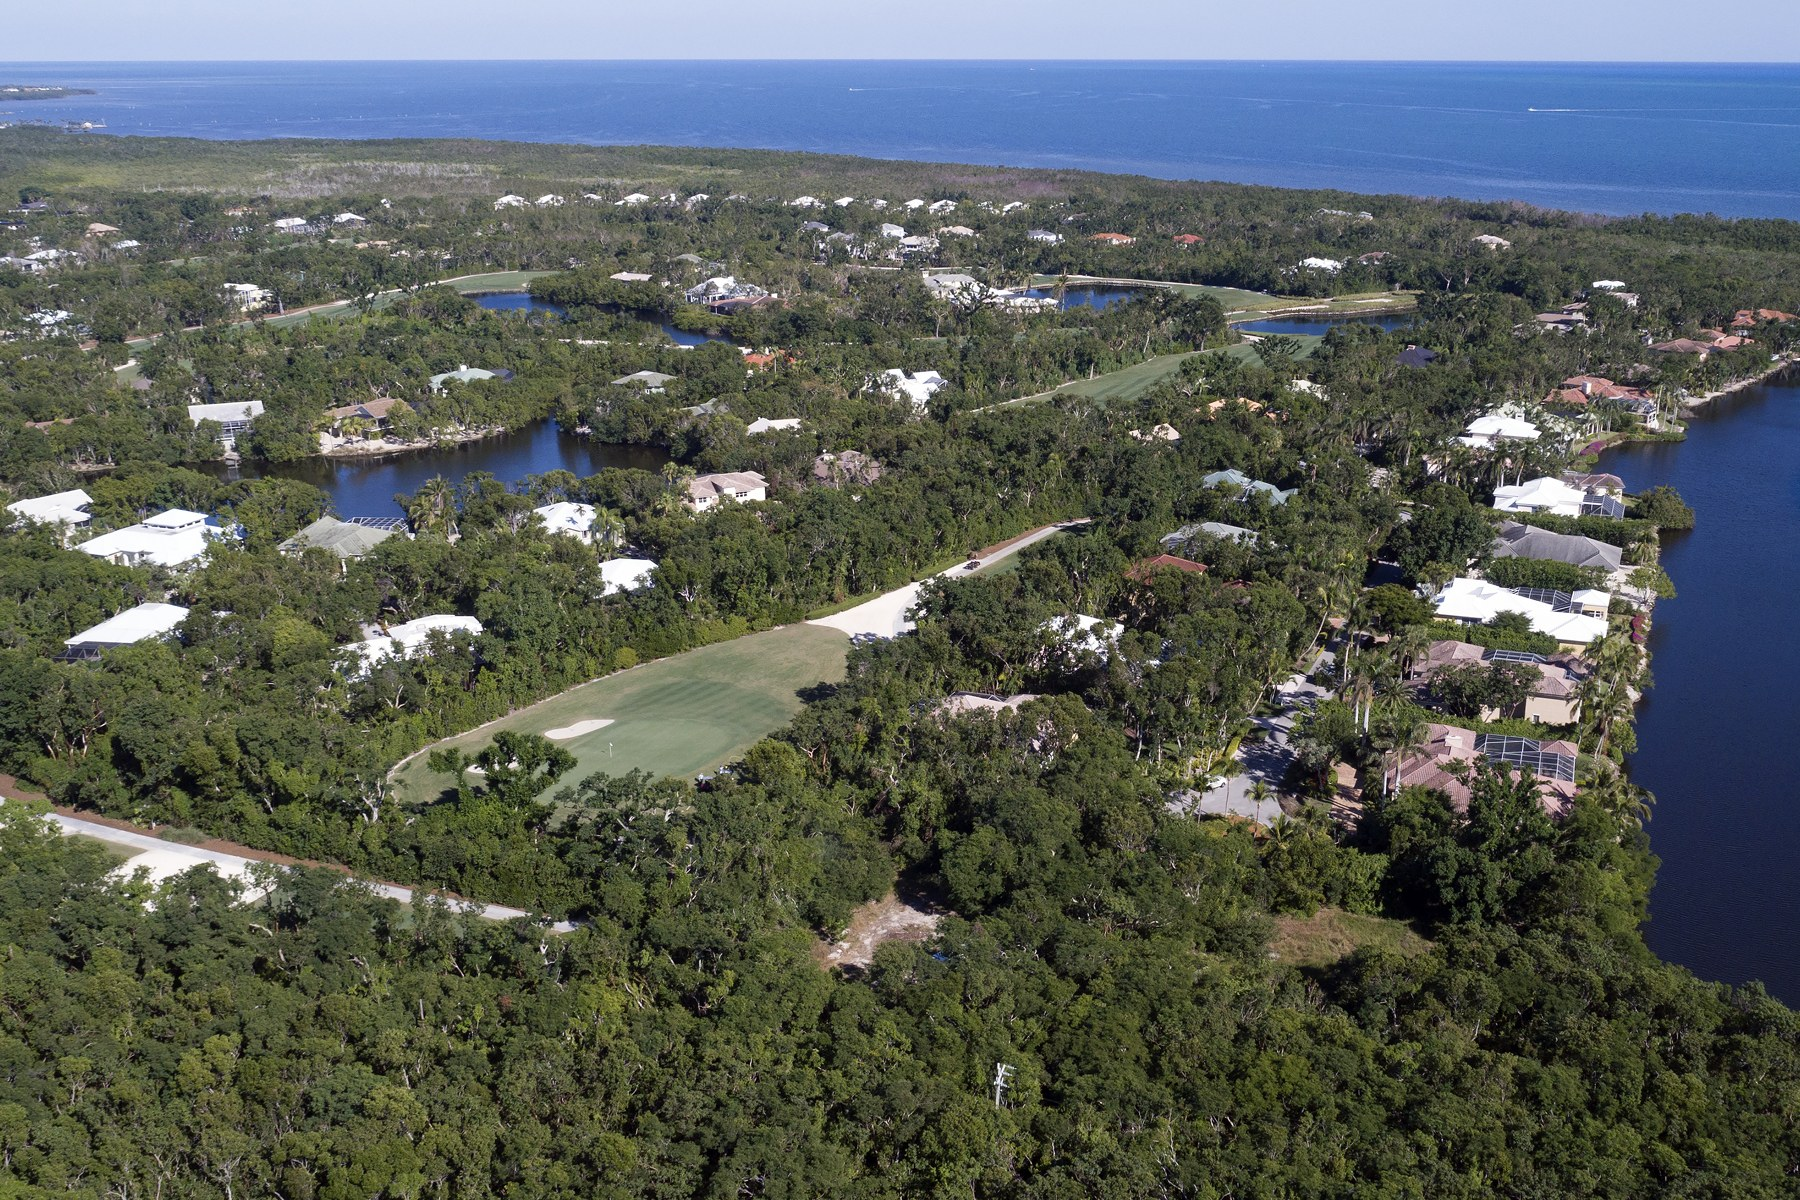 Land for Sale at 45 Thatch Palm Way, Key Largo, FL Key Largo, Florida 33037 United States